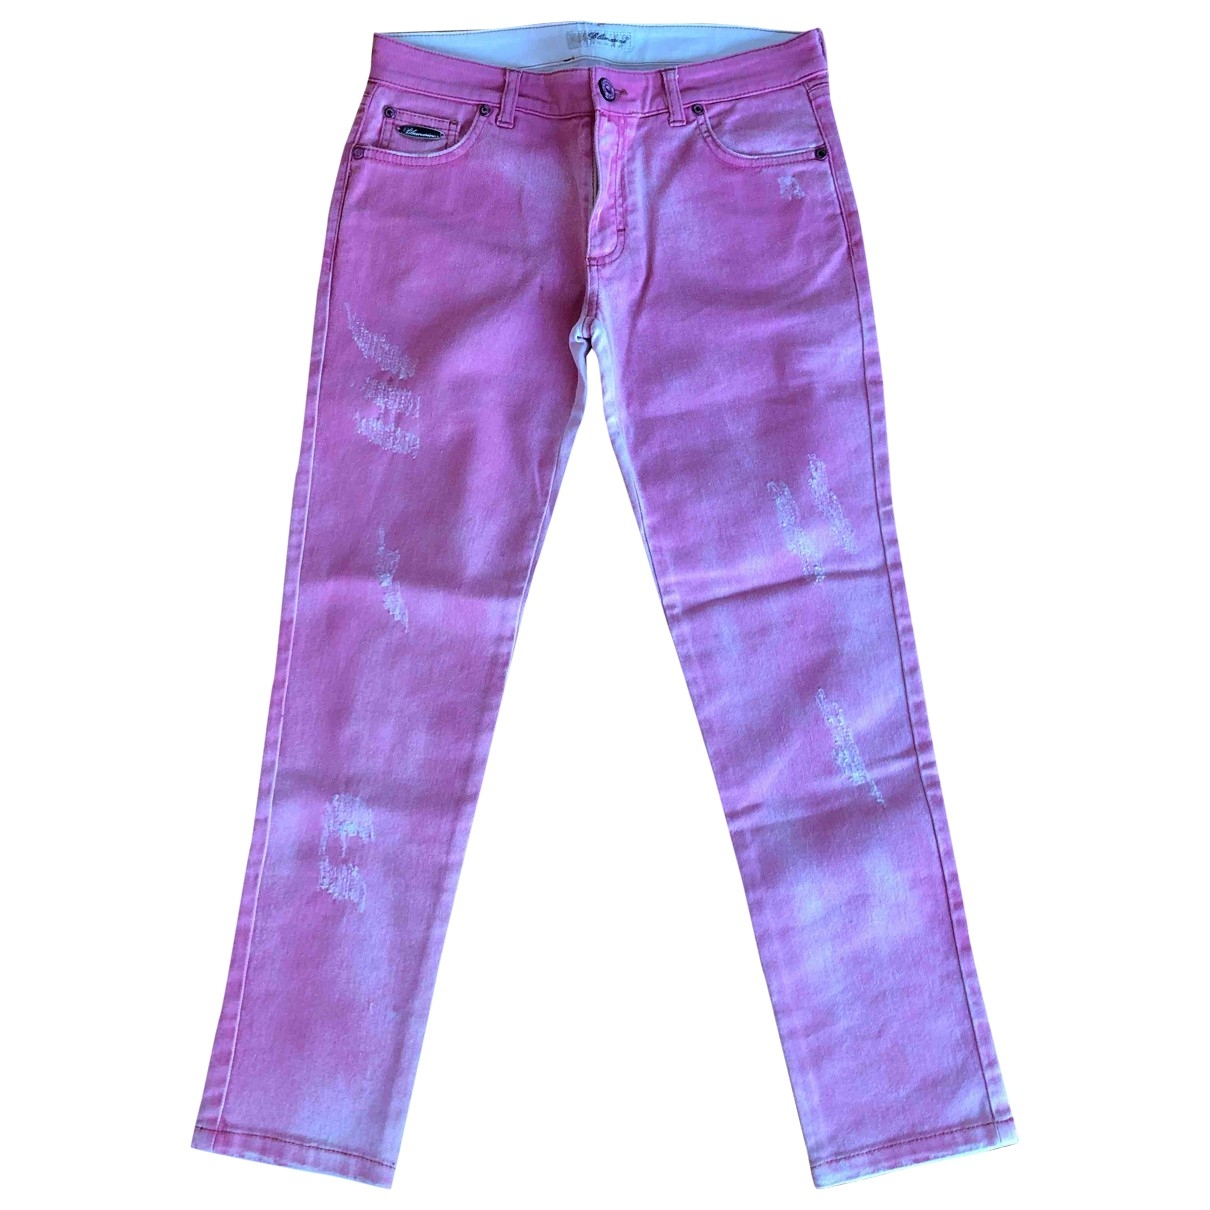 Blumarine \N Pink Cotton Jeans for Women 34 FR